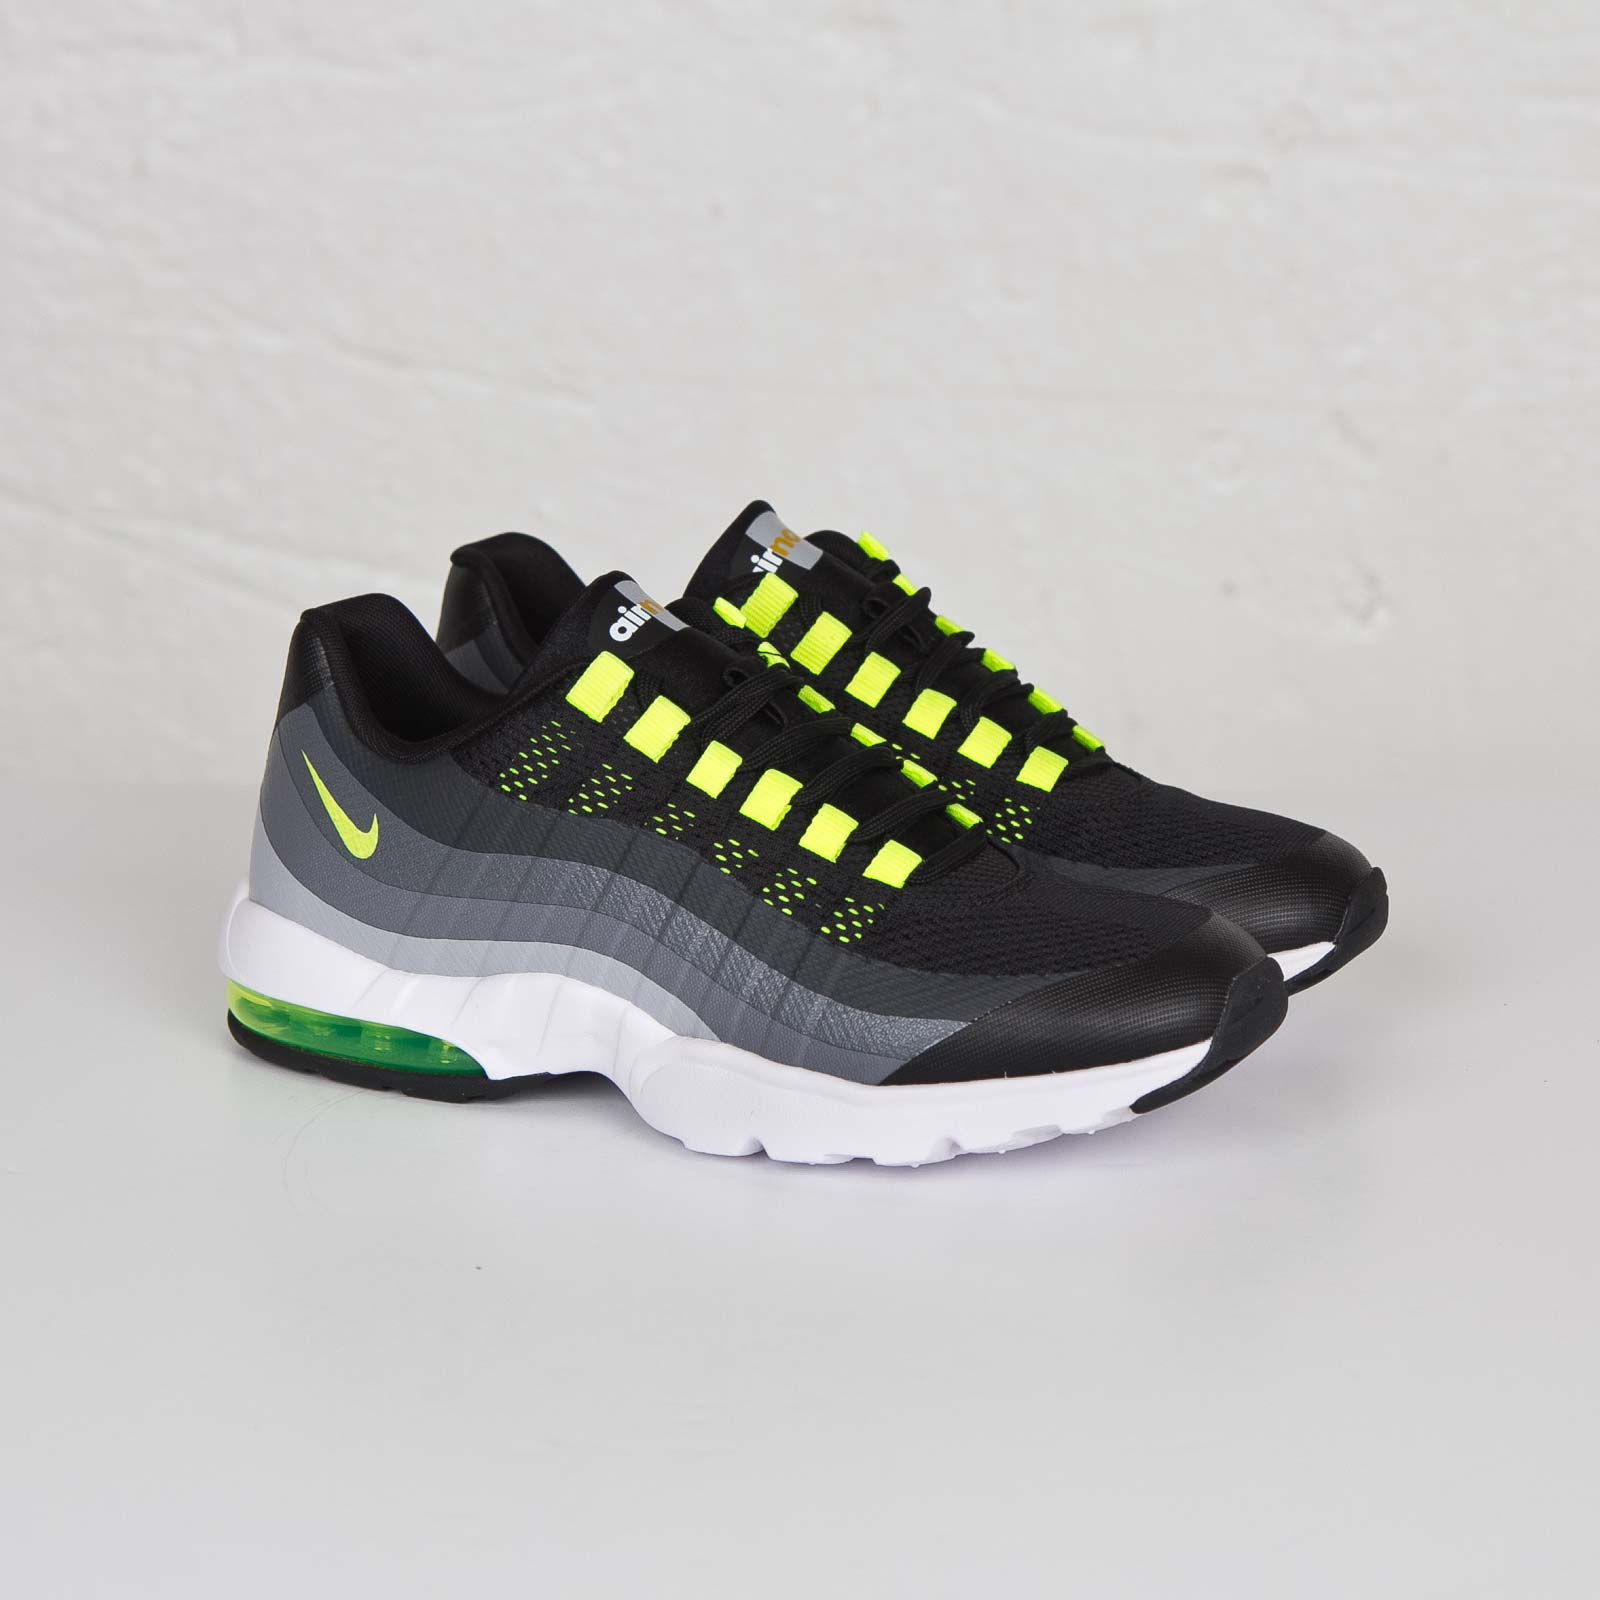 Nike Wmns Air Max 95 Ultra 749212 002 Sneakersnstuff